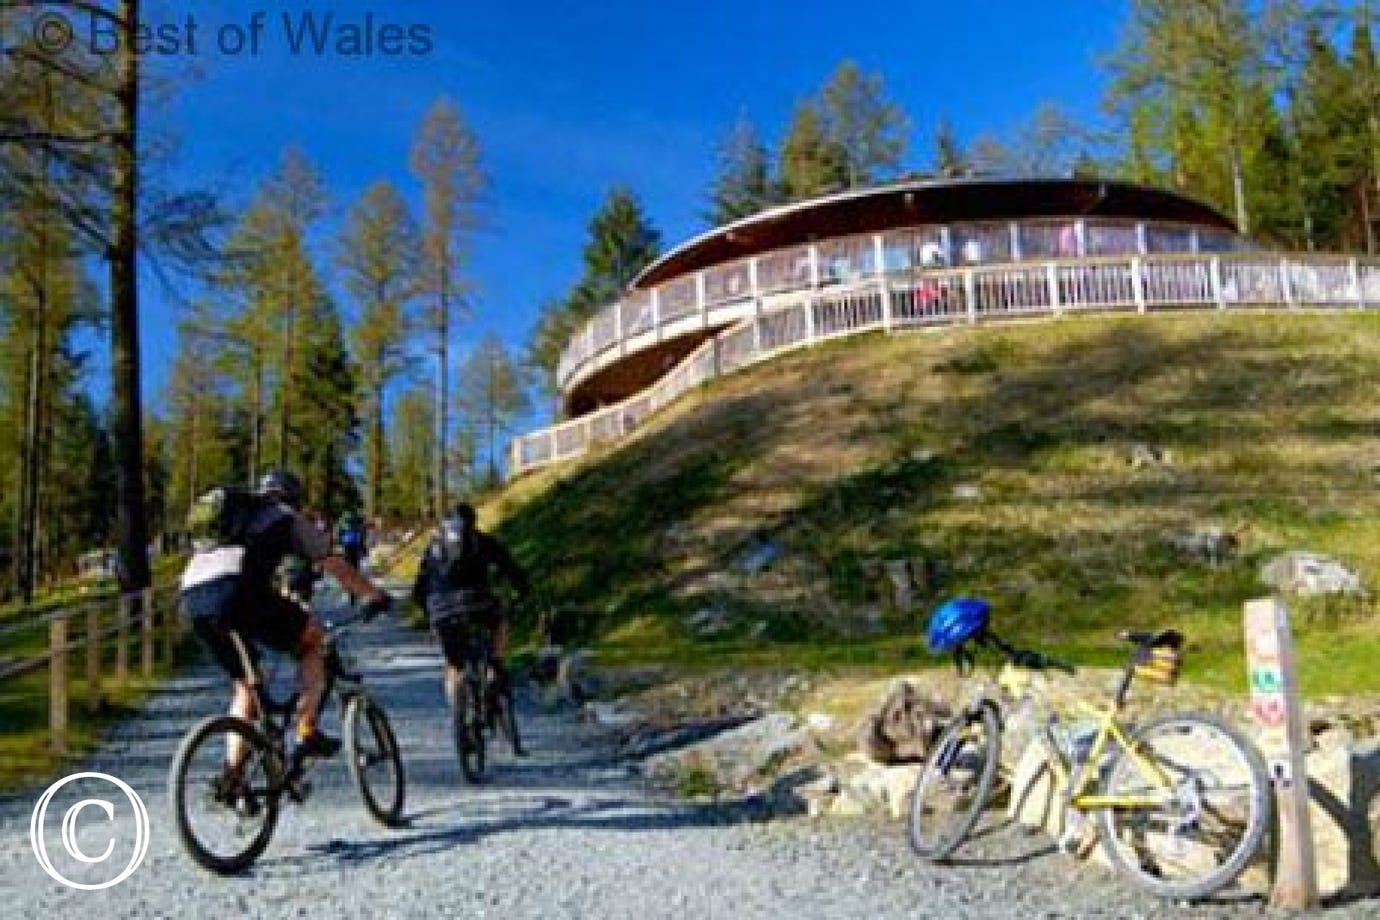 Cycle around the lake or visit Coed y Brenin Mountain Biking Centre